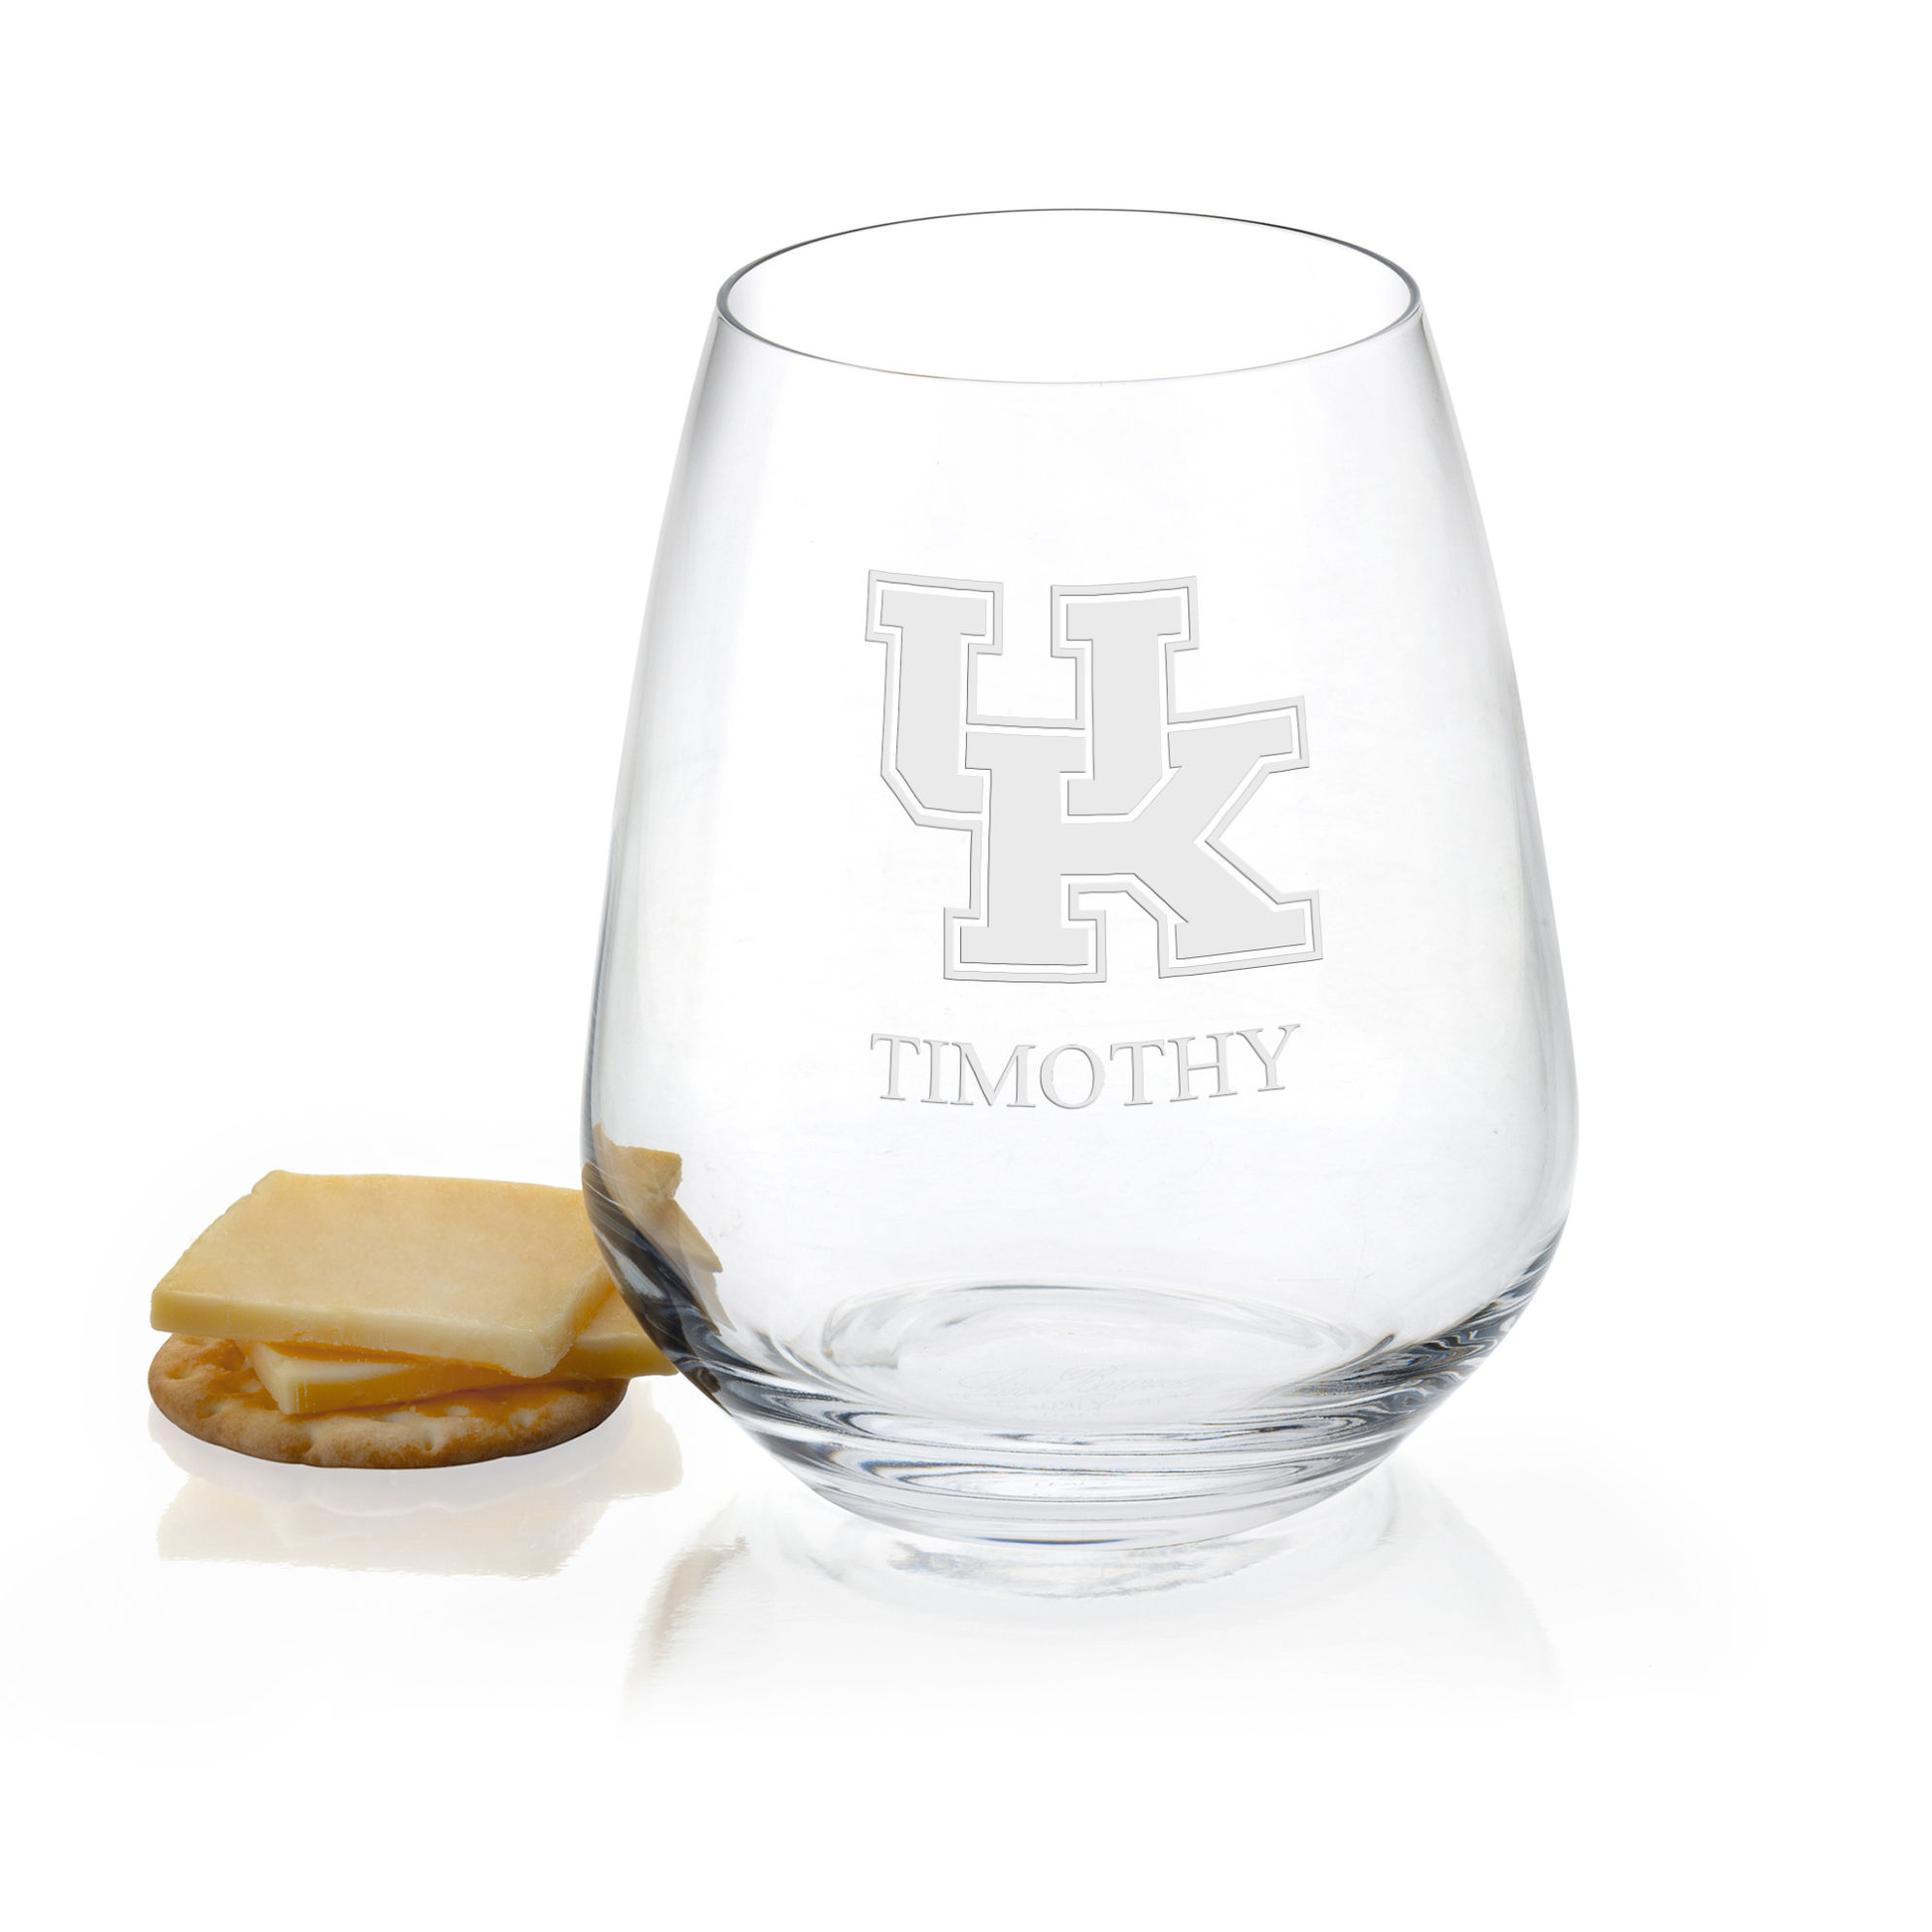 University of Kentucky Stemless Wine Glasses - Set of 2